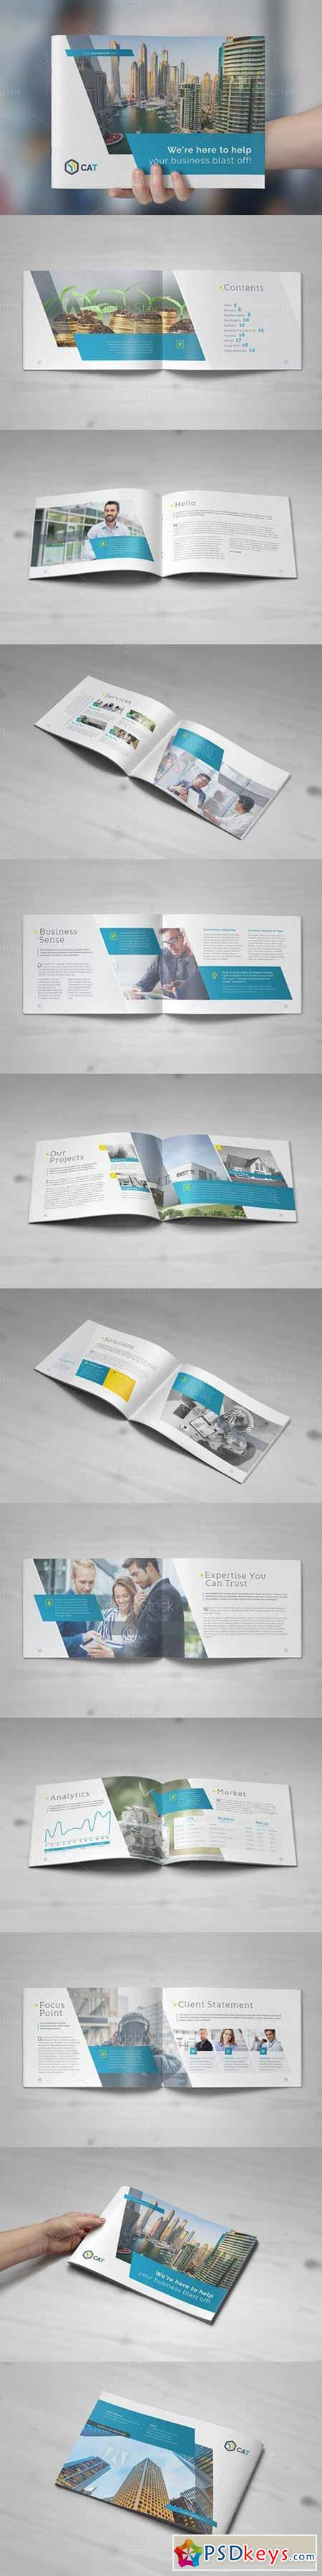 Business Brochure - Landscape Vol. 1 490756